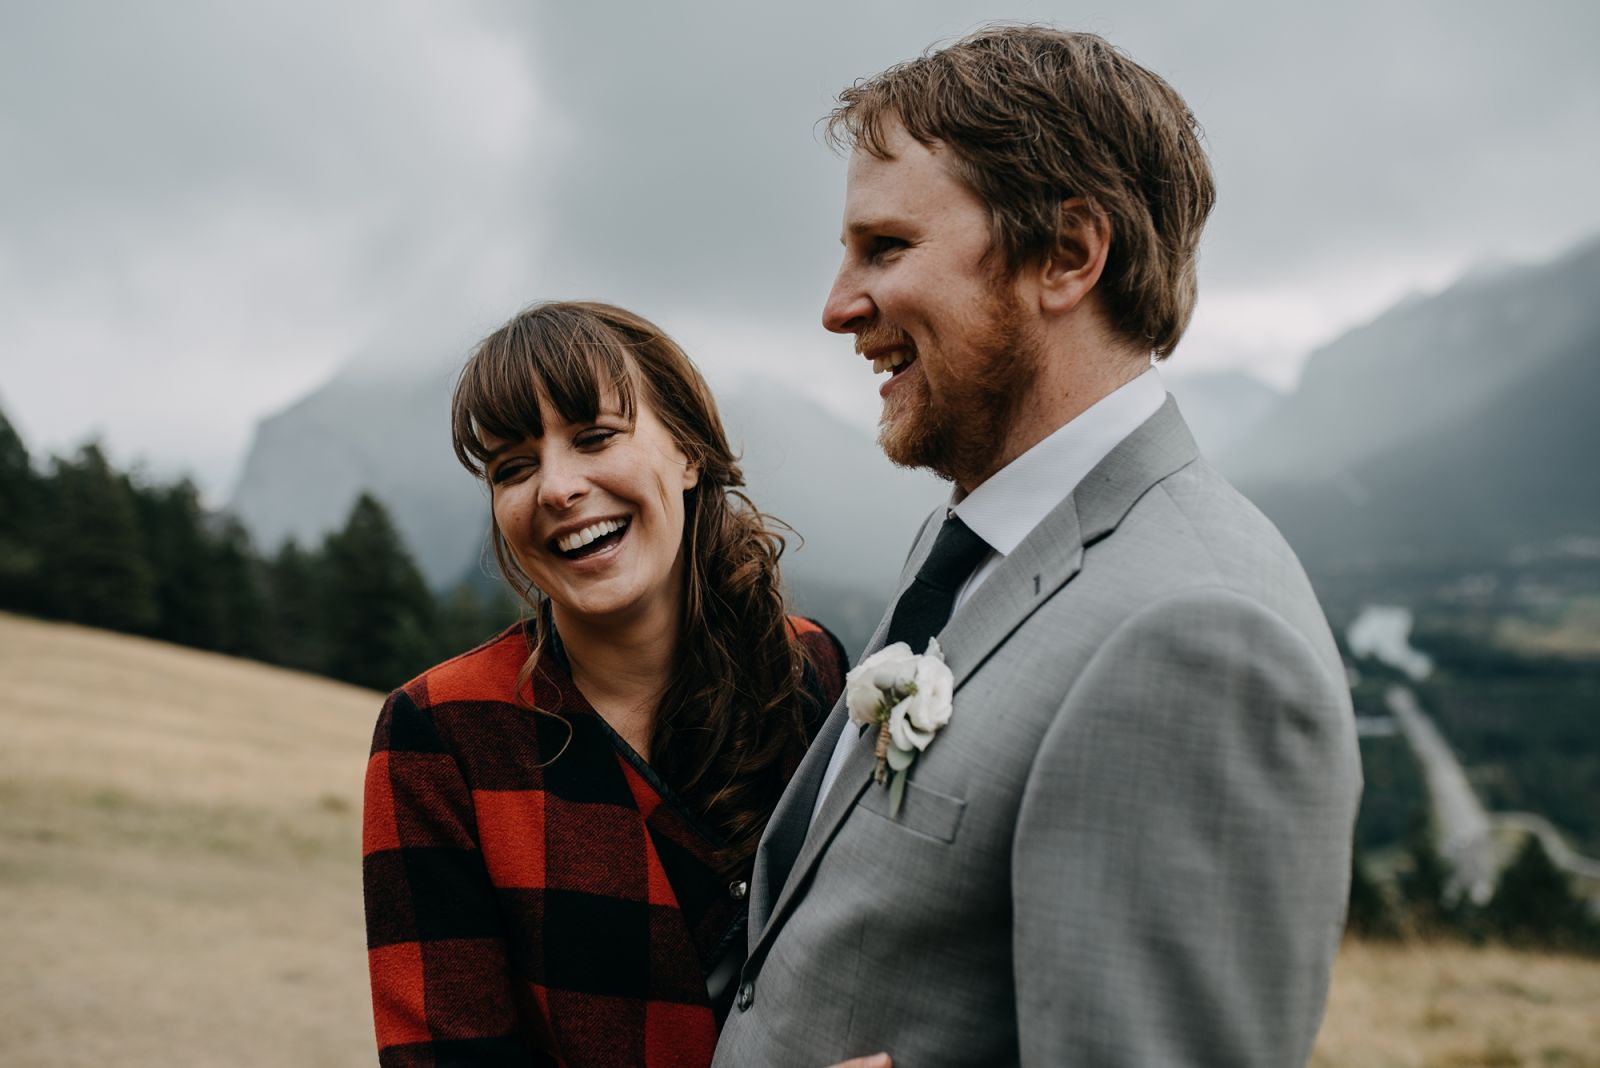 Bride and Groom in boho wedding with indi style bride at Norquay wedding in Banff national park